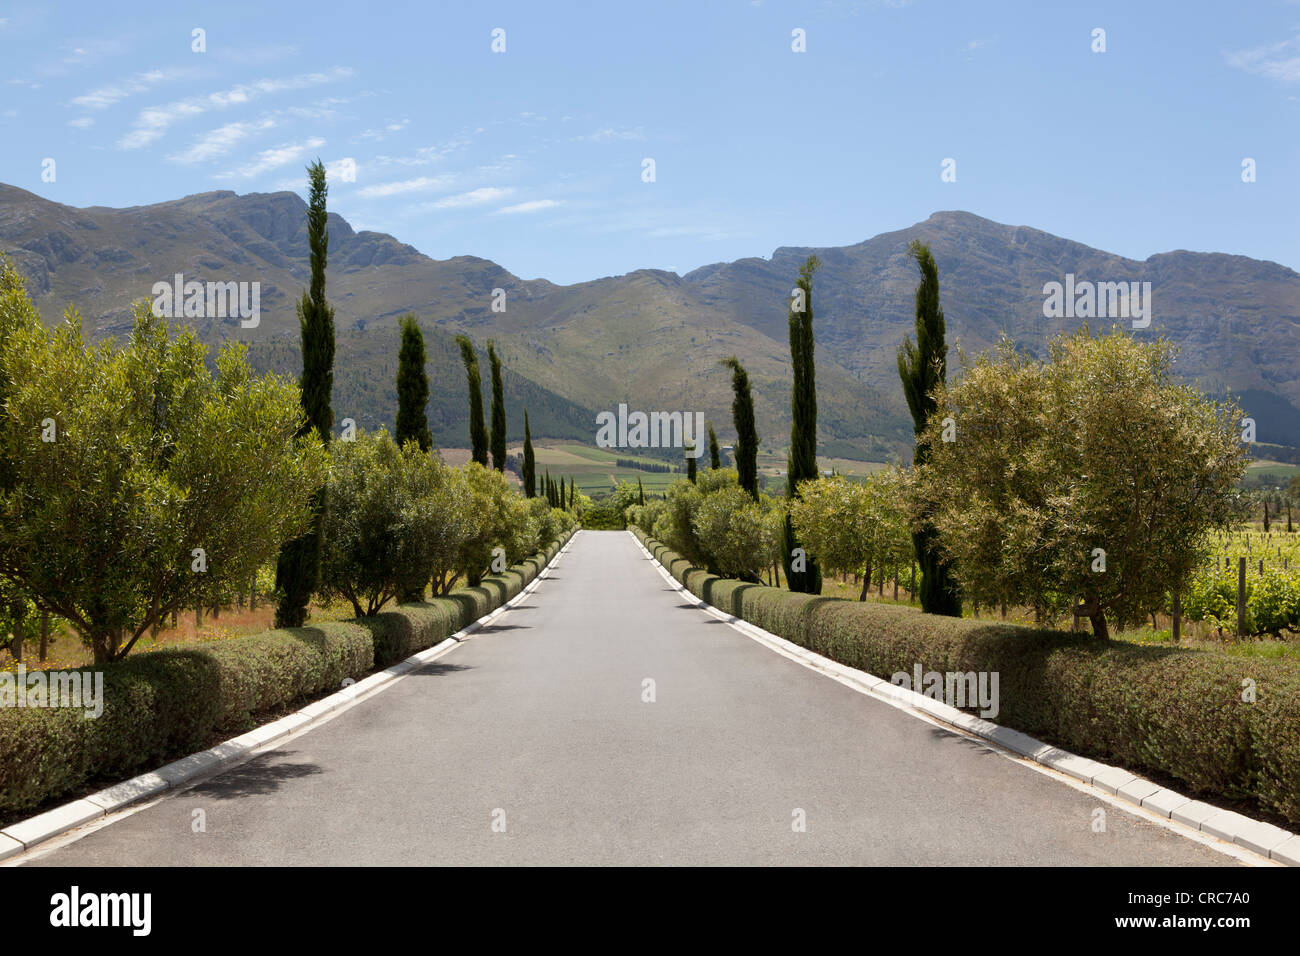 Trees lining rural road - Stock Image